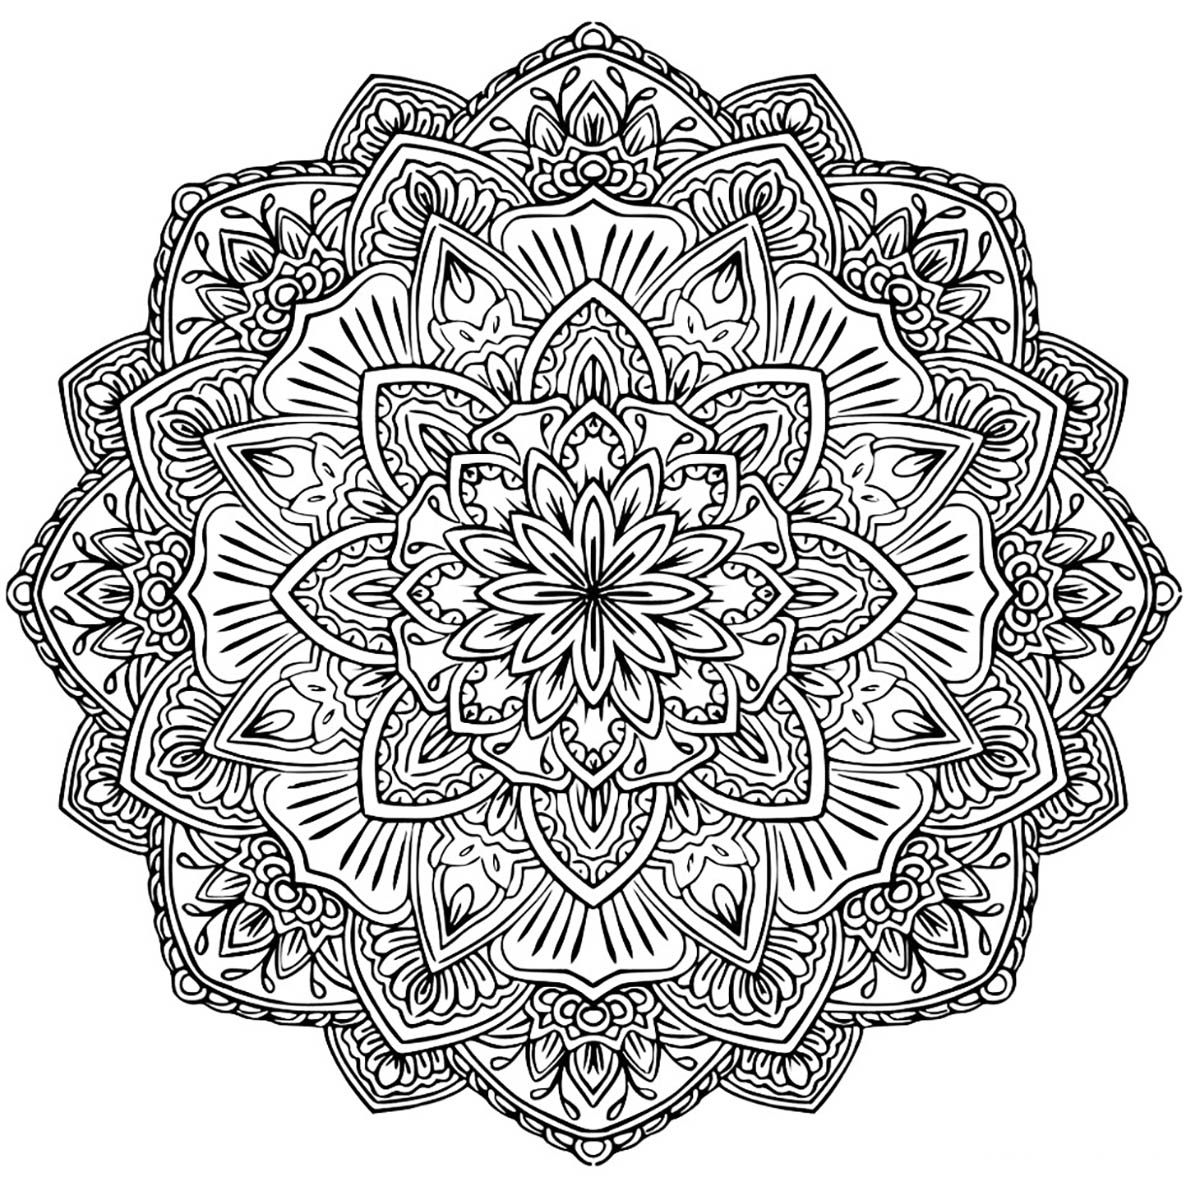 this gallery contains difficult but not too much mandala coloring pages little details. Black Bedroom Furniture Sets. Home Design Ideas